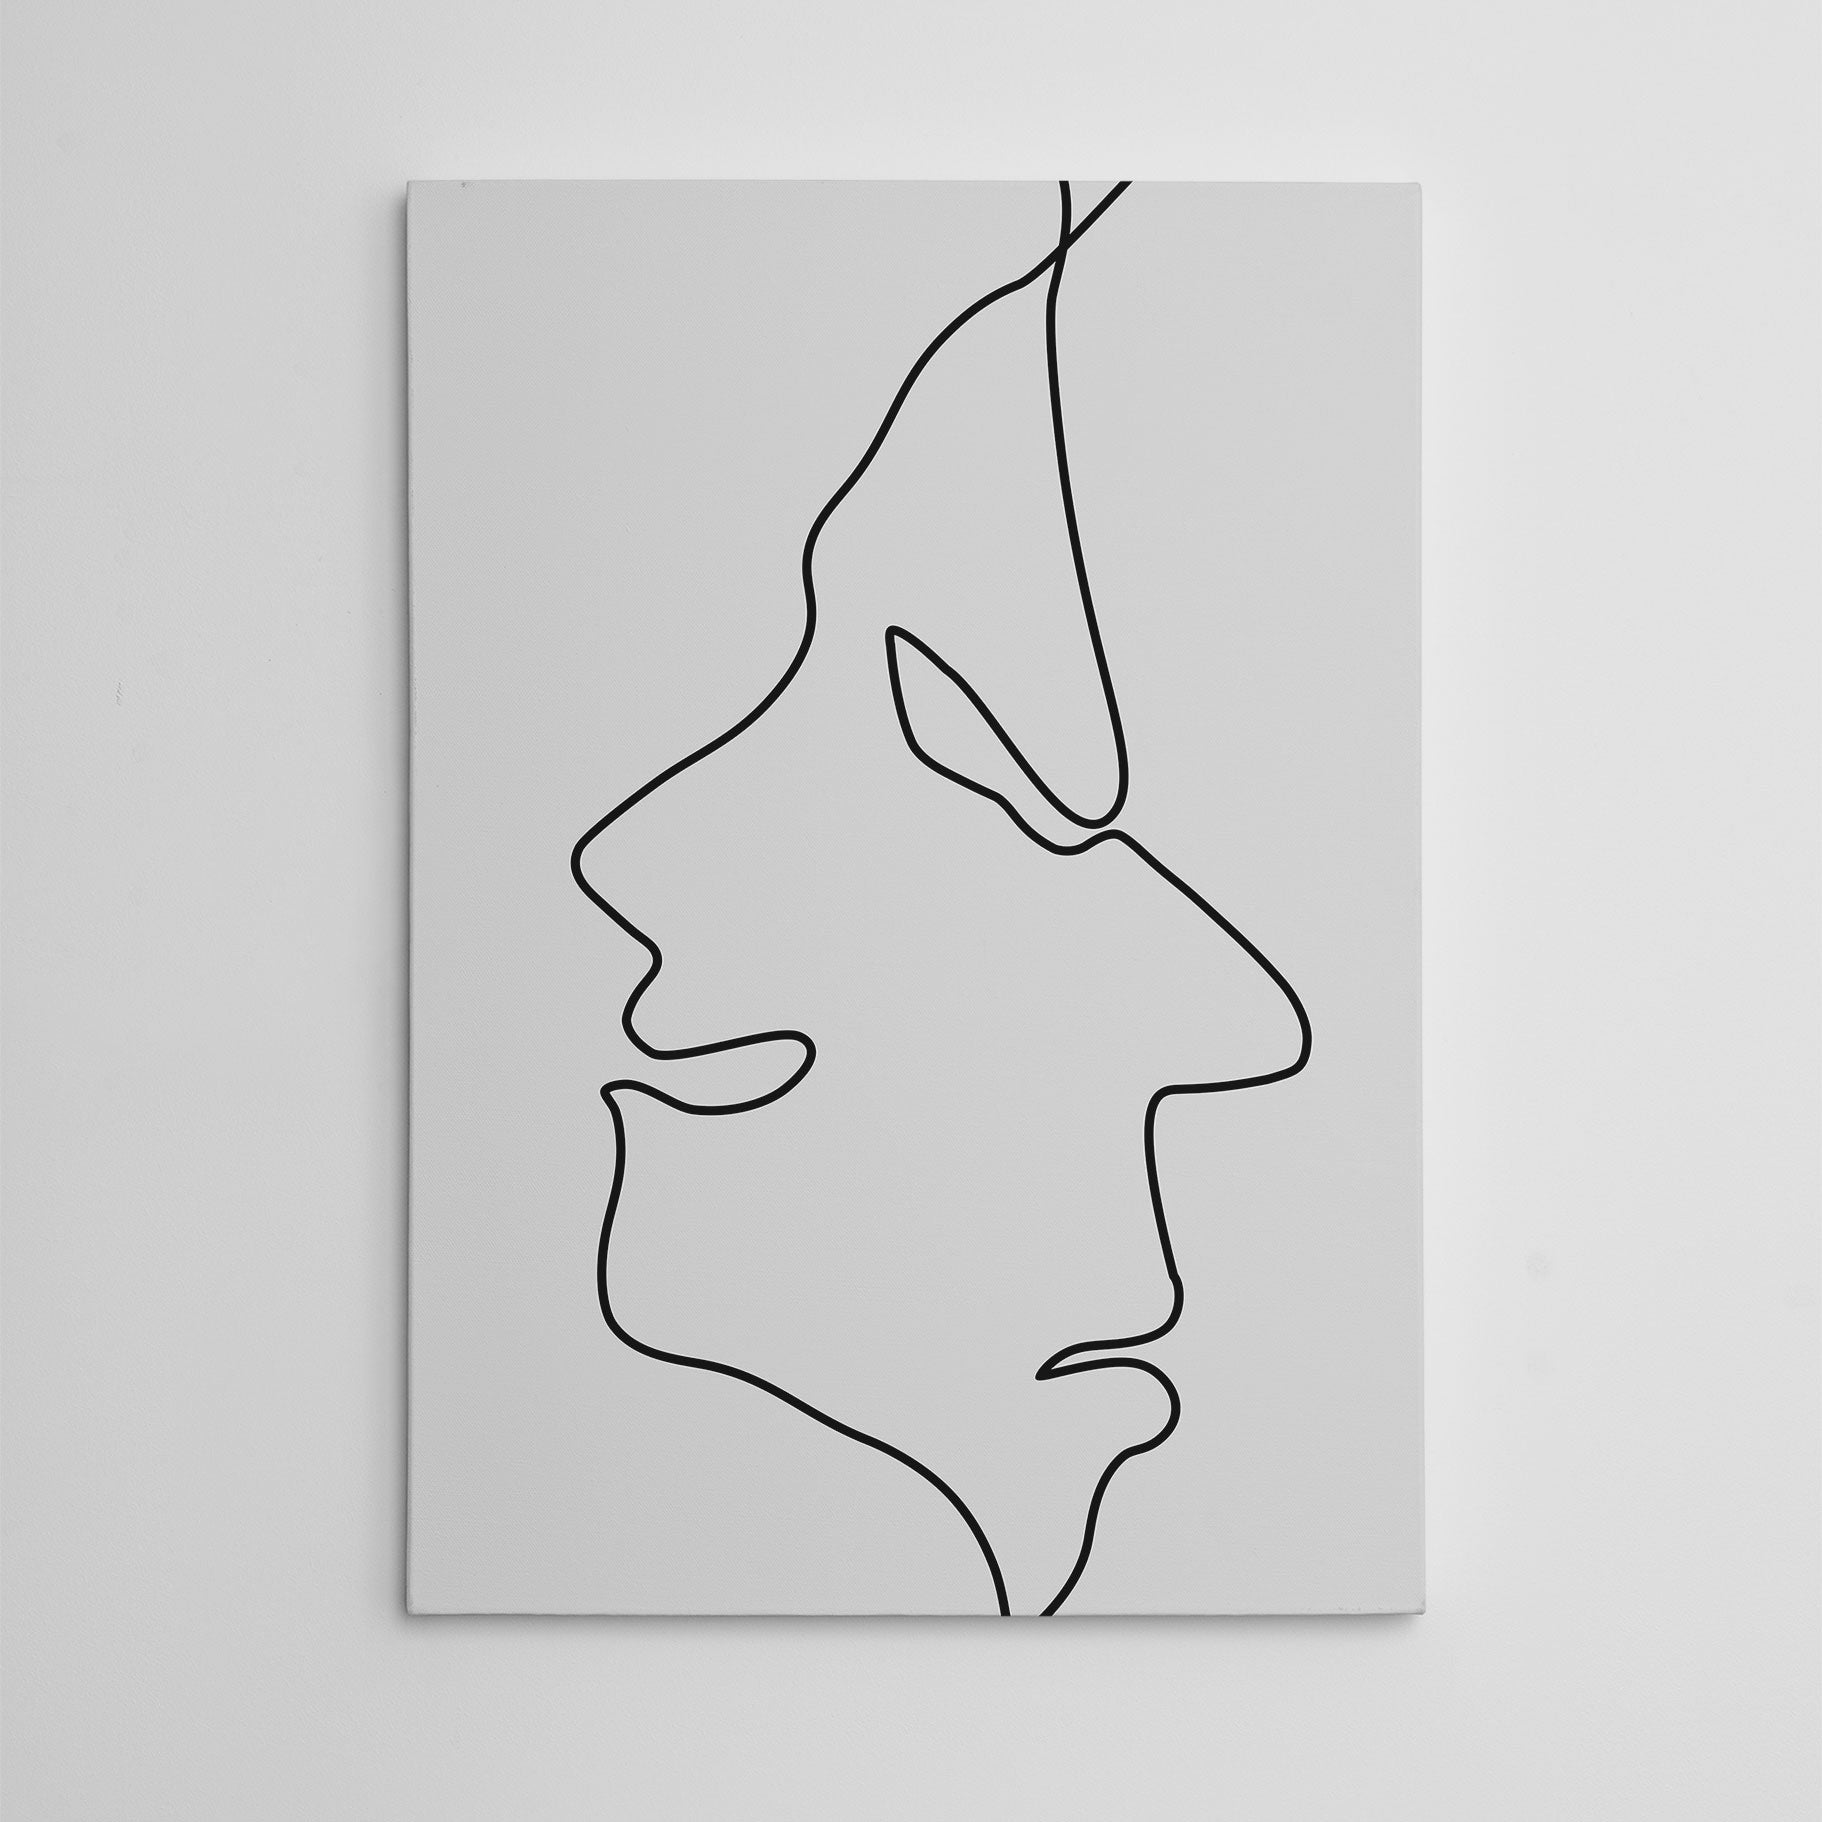 Line art canvas print with abstract happy and sad faces drawing.